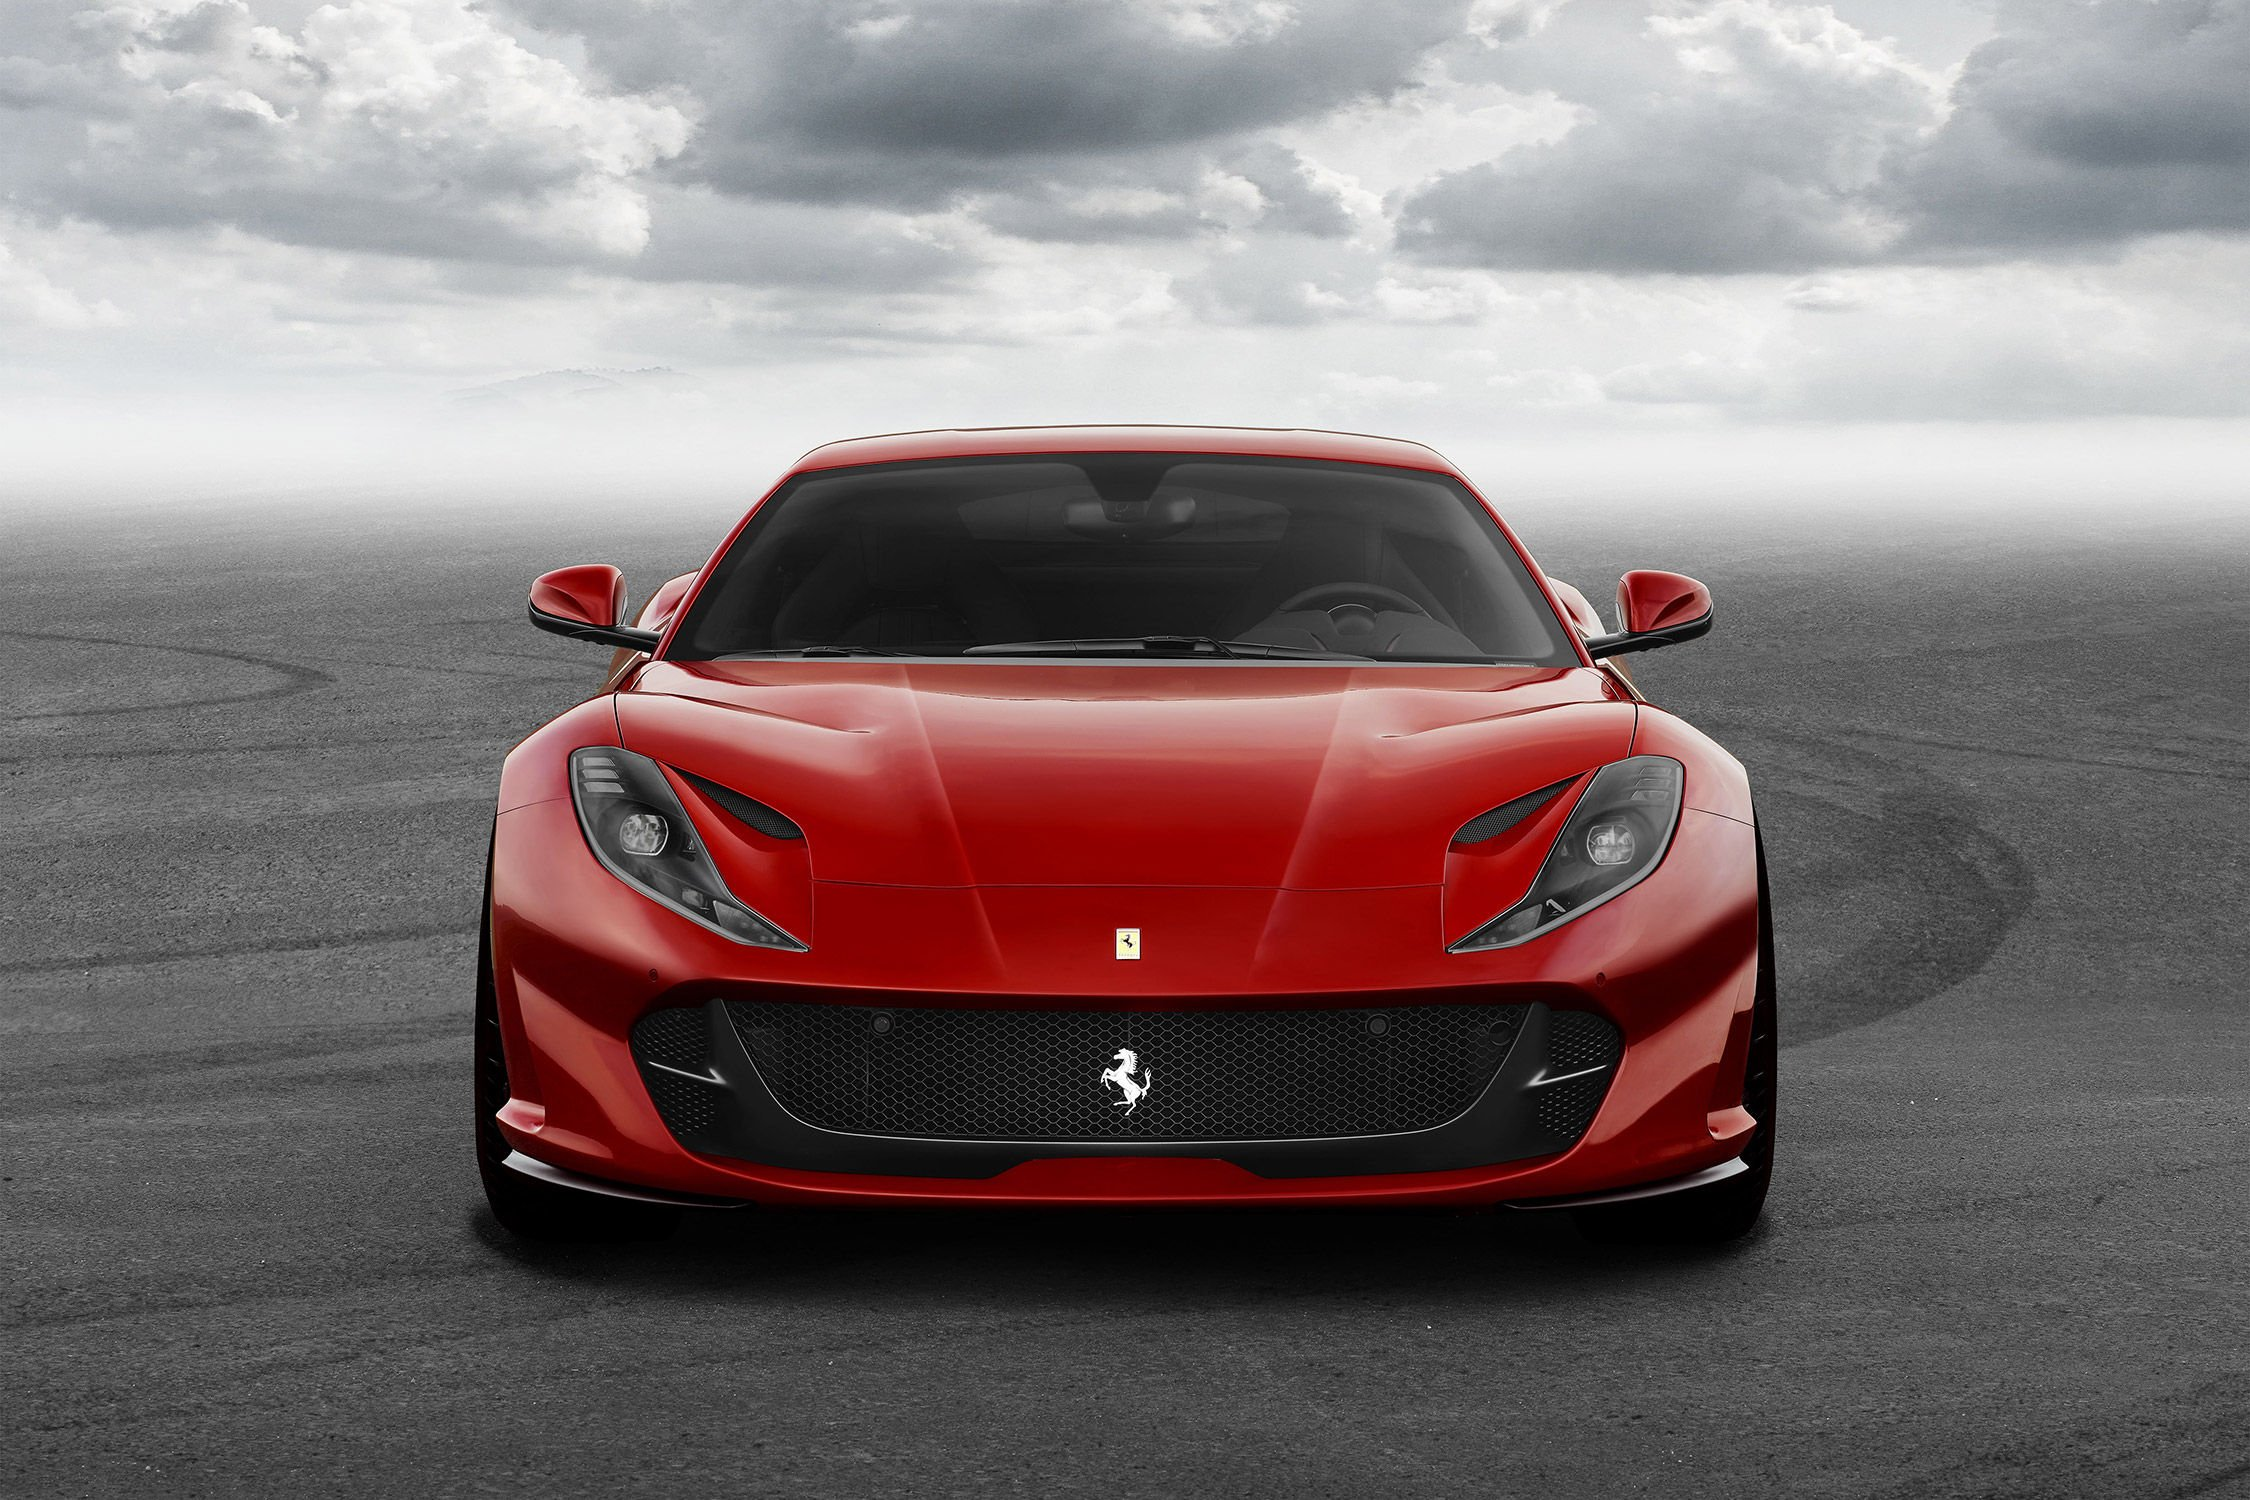 ferrari 812 superfast 800 ch sous le capot actualit automobile motorlegend. Black Bedroom Furniture Sets. Home Design Ideas